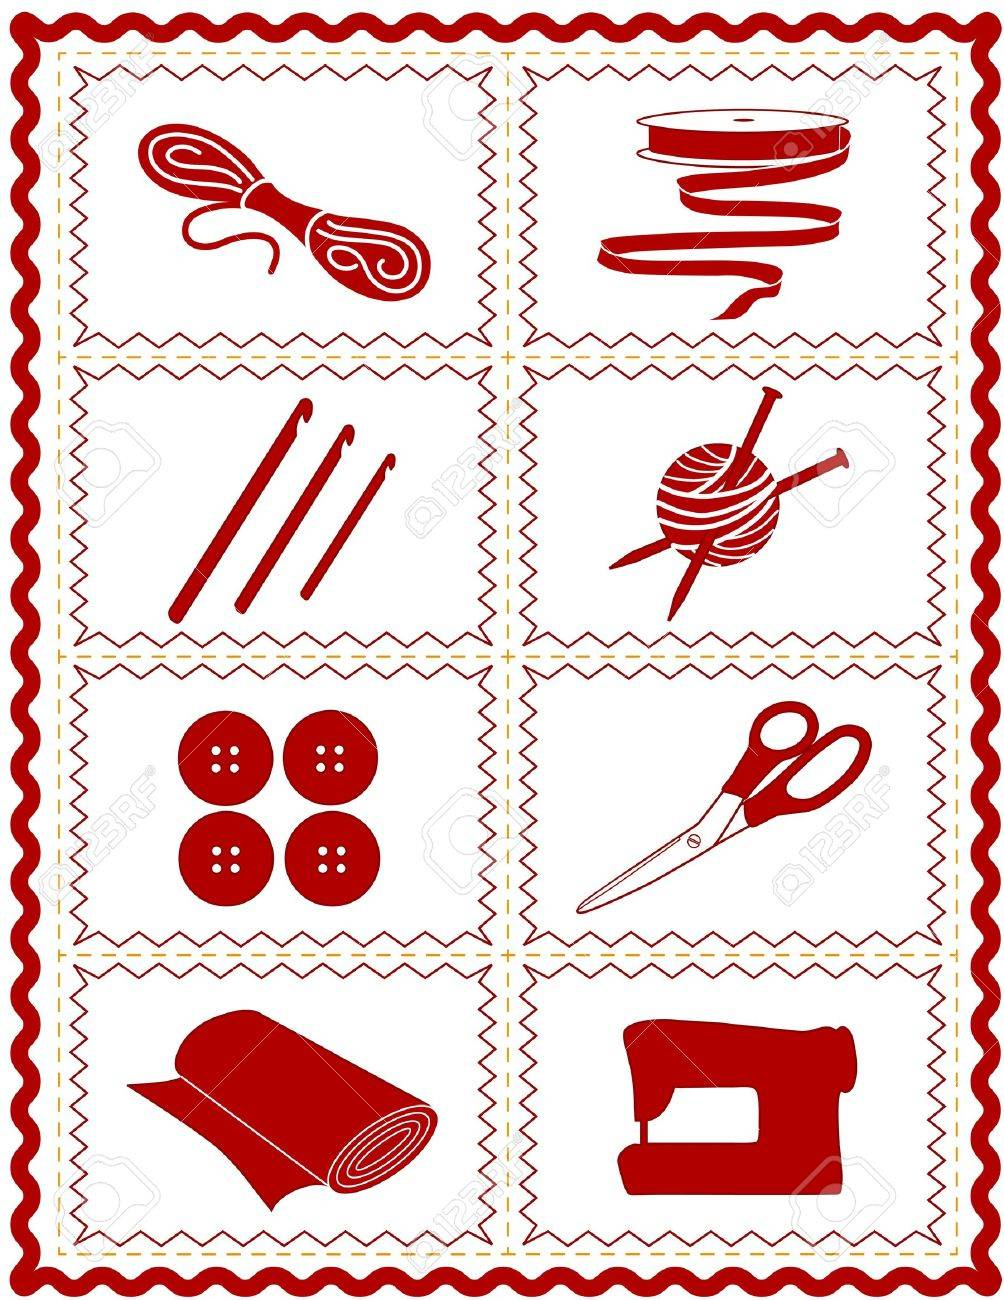 Sewing Knit Crochet Craft Icons Tools And Supplies For Tailoring Dressmaking